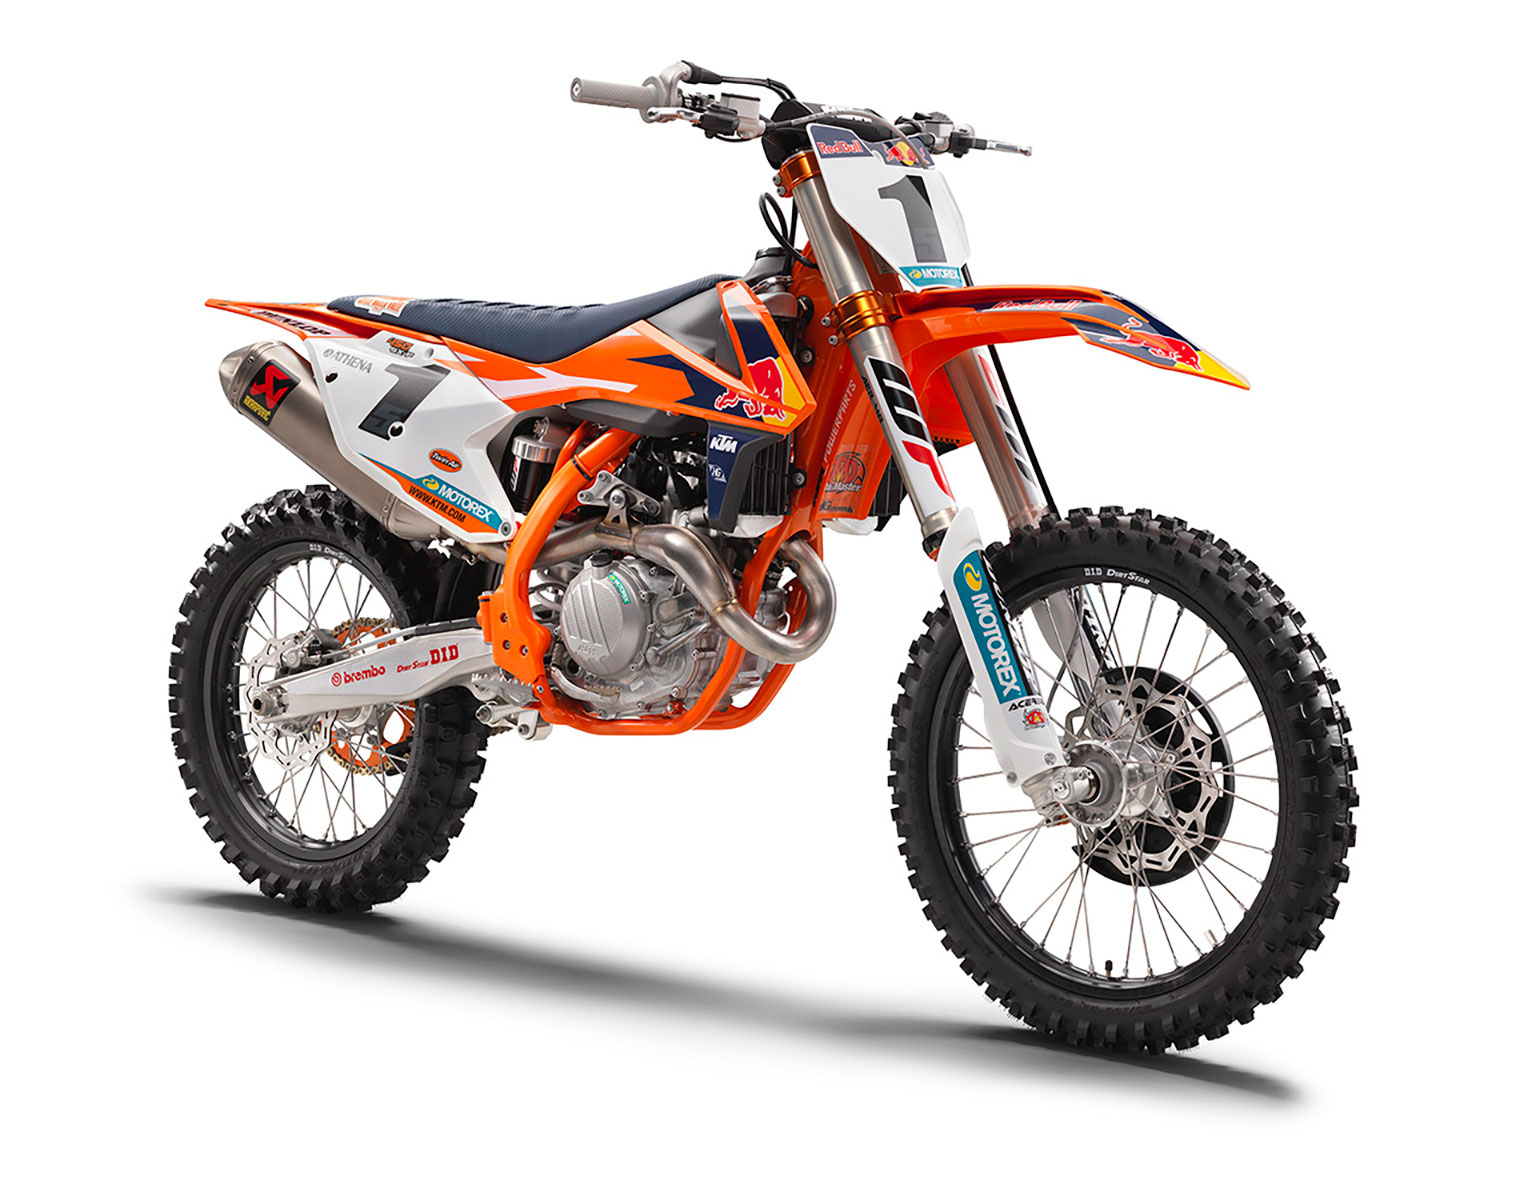 2018 suzuki motocross. delighful suzuki ktm often reveals its latest technology just before the us supercross  season with a couple of factory edition bikes that are legal for ama racing u2013 and this  to 2018 suzuki motocross u